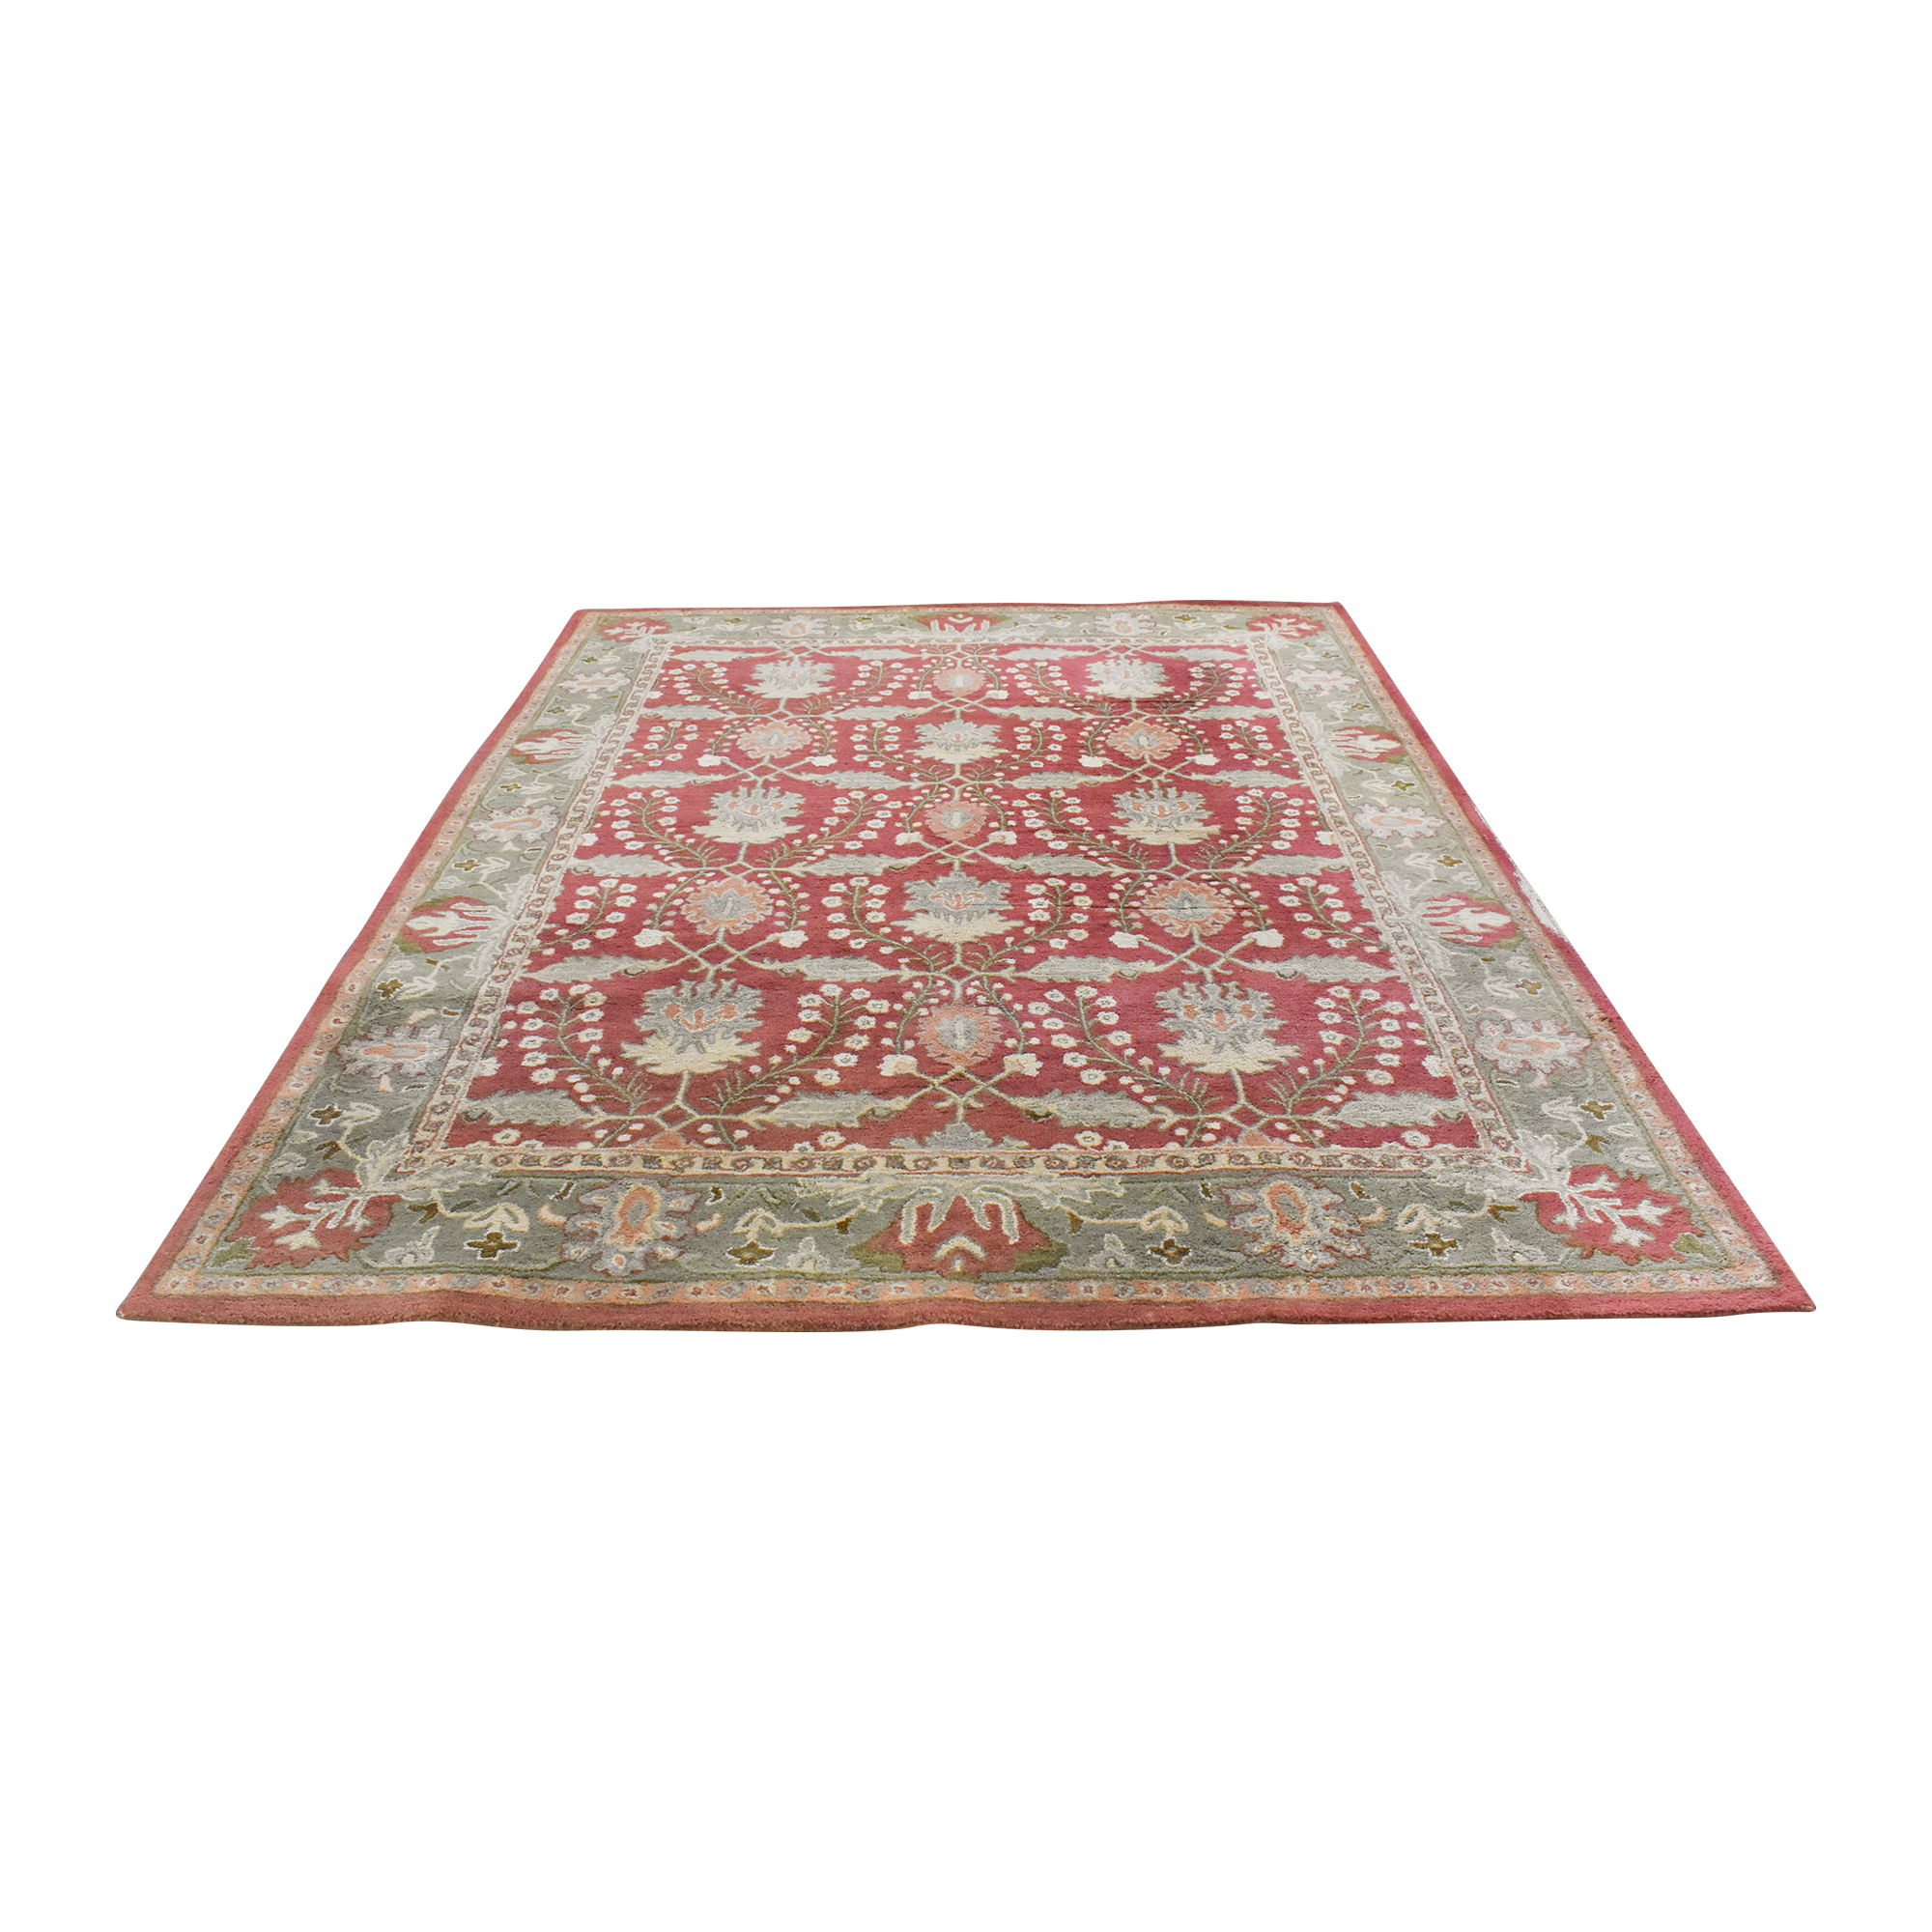 Pottery Barn Pottery Barn Franklin Persian-Style Rug multi